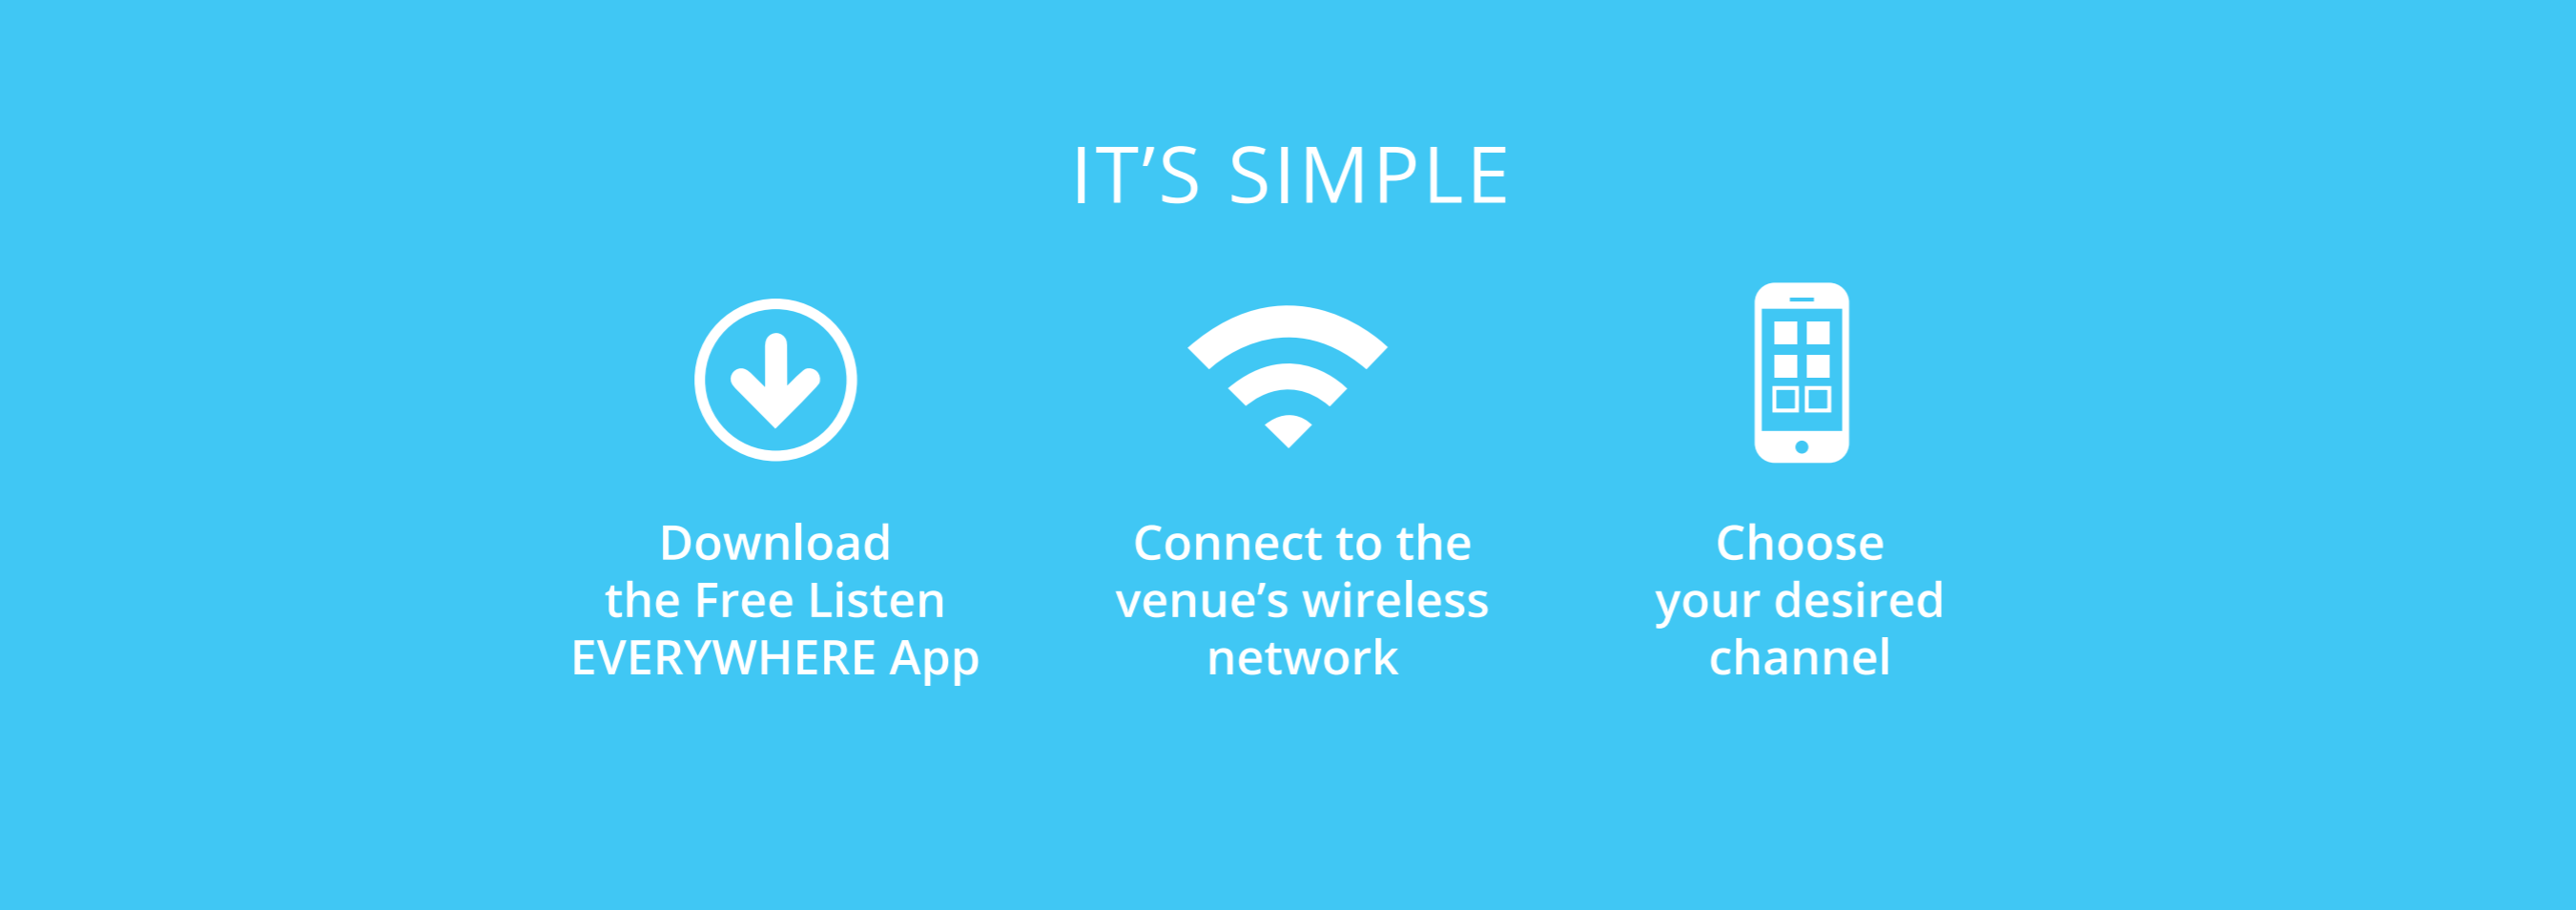 Graphic representing three steps: download, connect, select